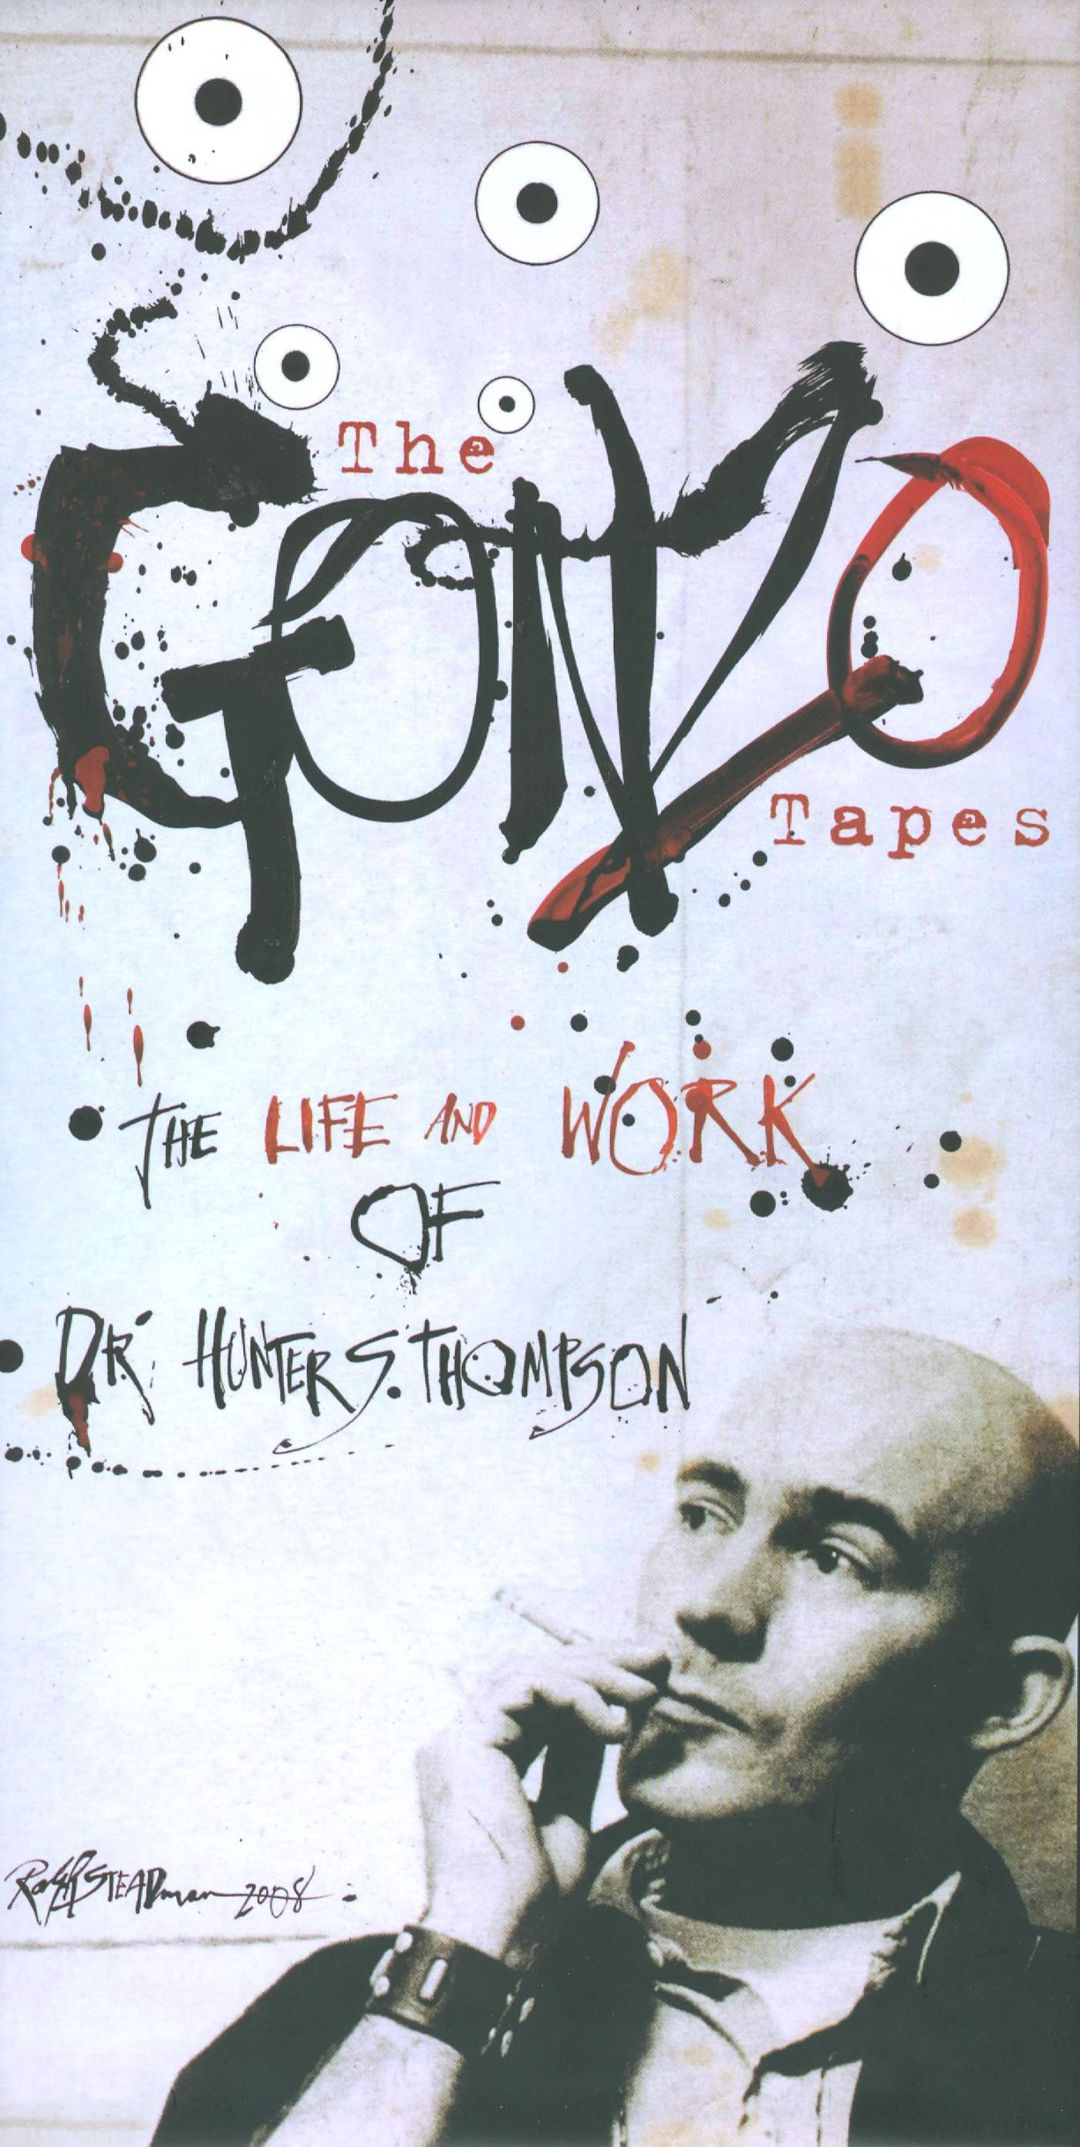 The Gonzo Tapes: The Life and Times of Dr. Hunter S. Thompson